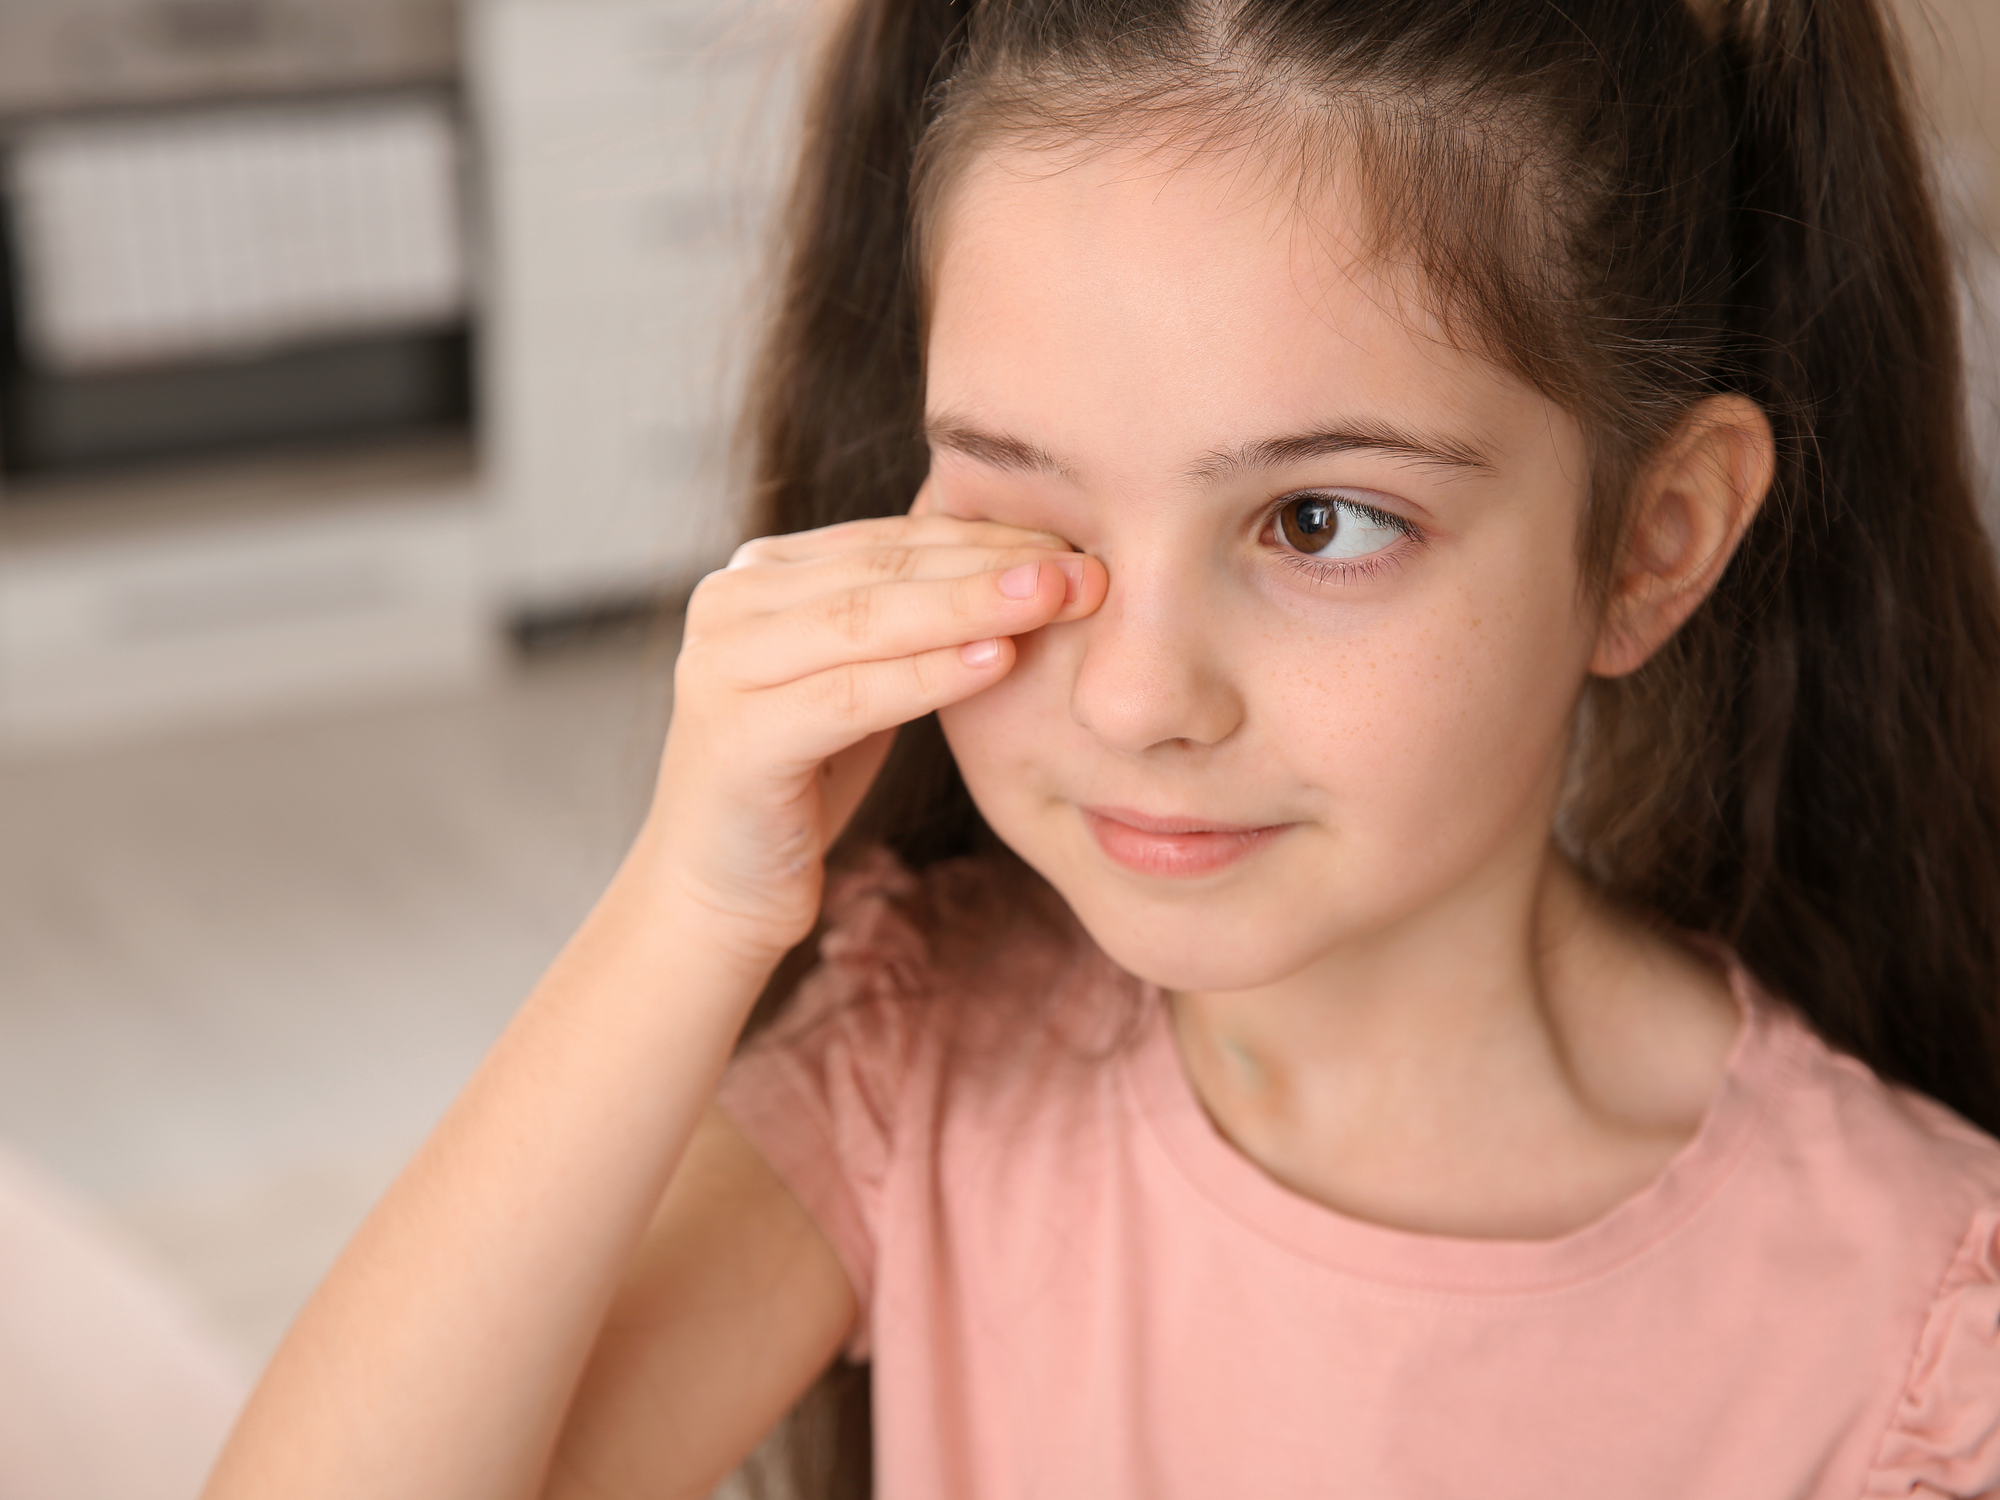 Common Vision Issues in Kids and Treating Them